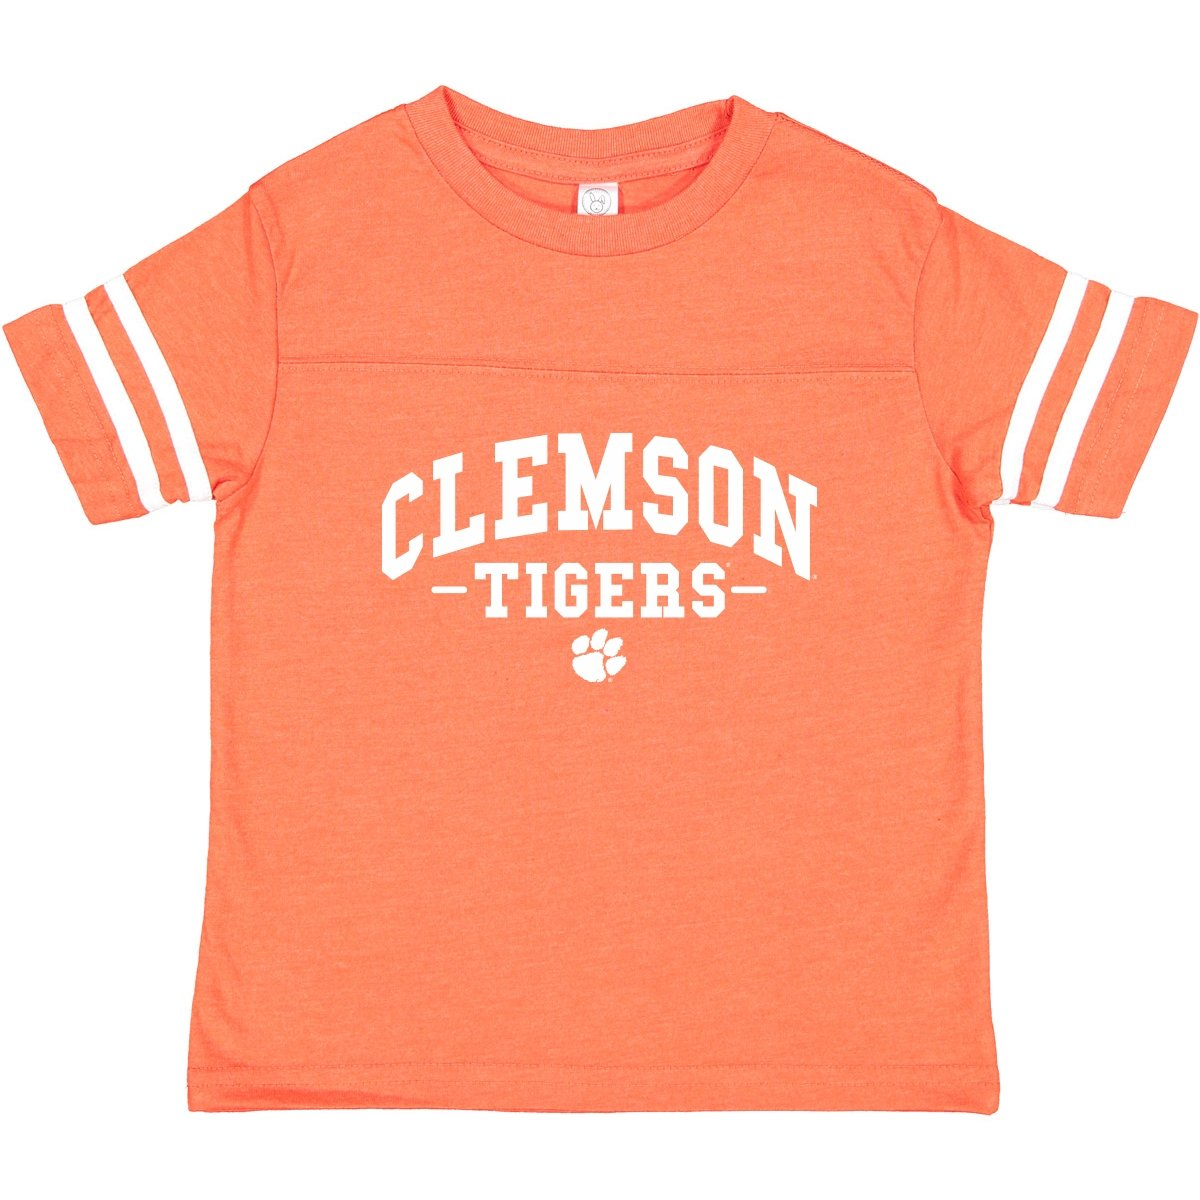 Toddler Tee Football With Clemson Tigers Stacked - Mr. Knickerbocker